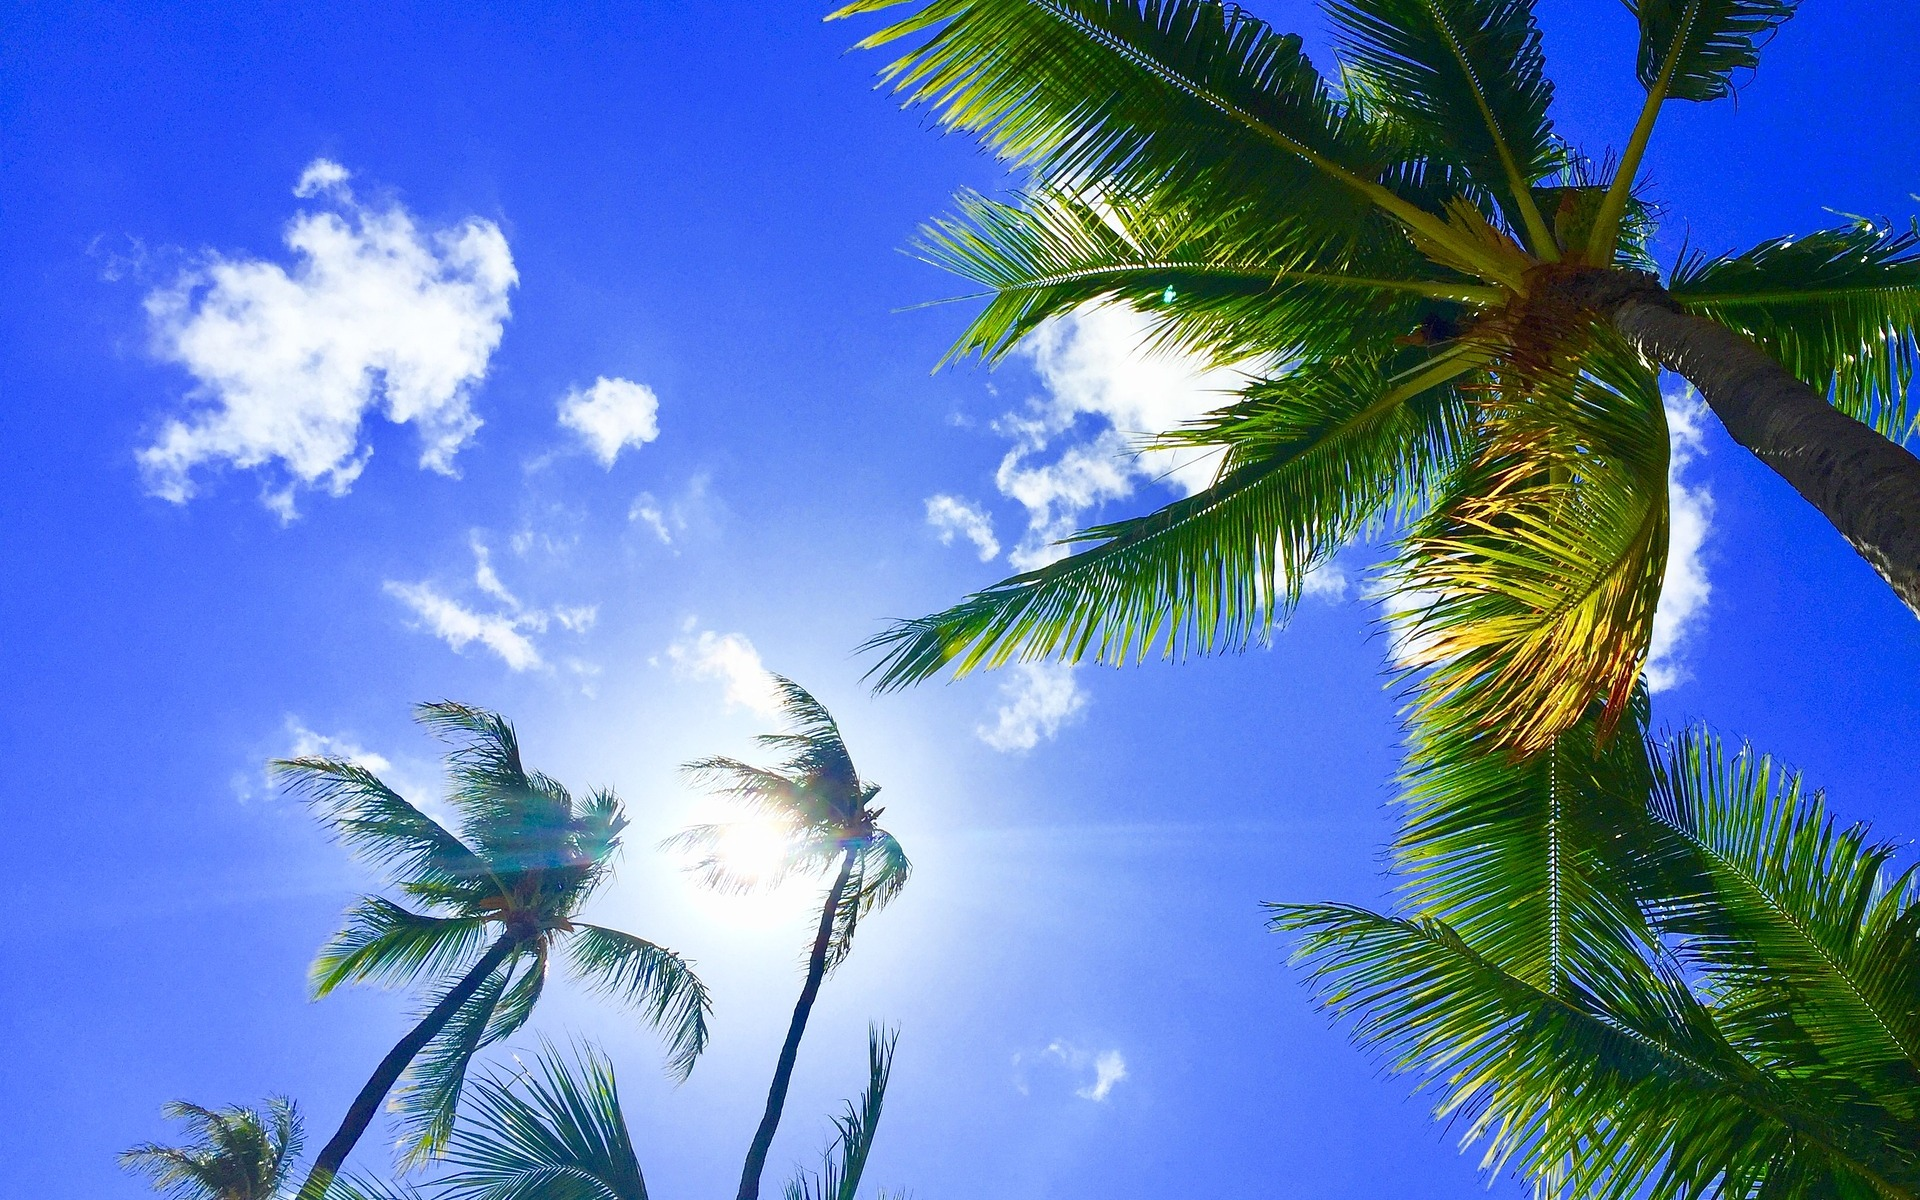 Blue sky and clouds with palm trees in Hawaii